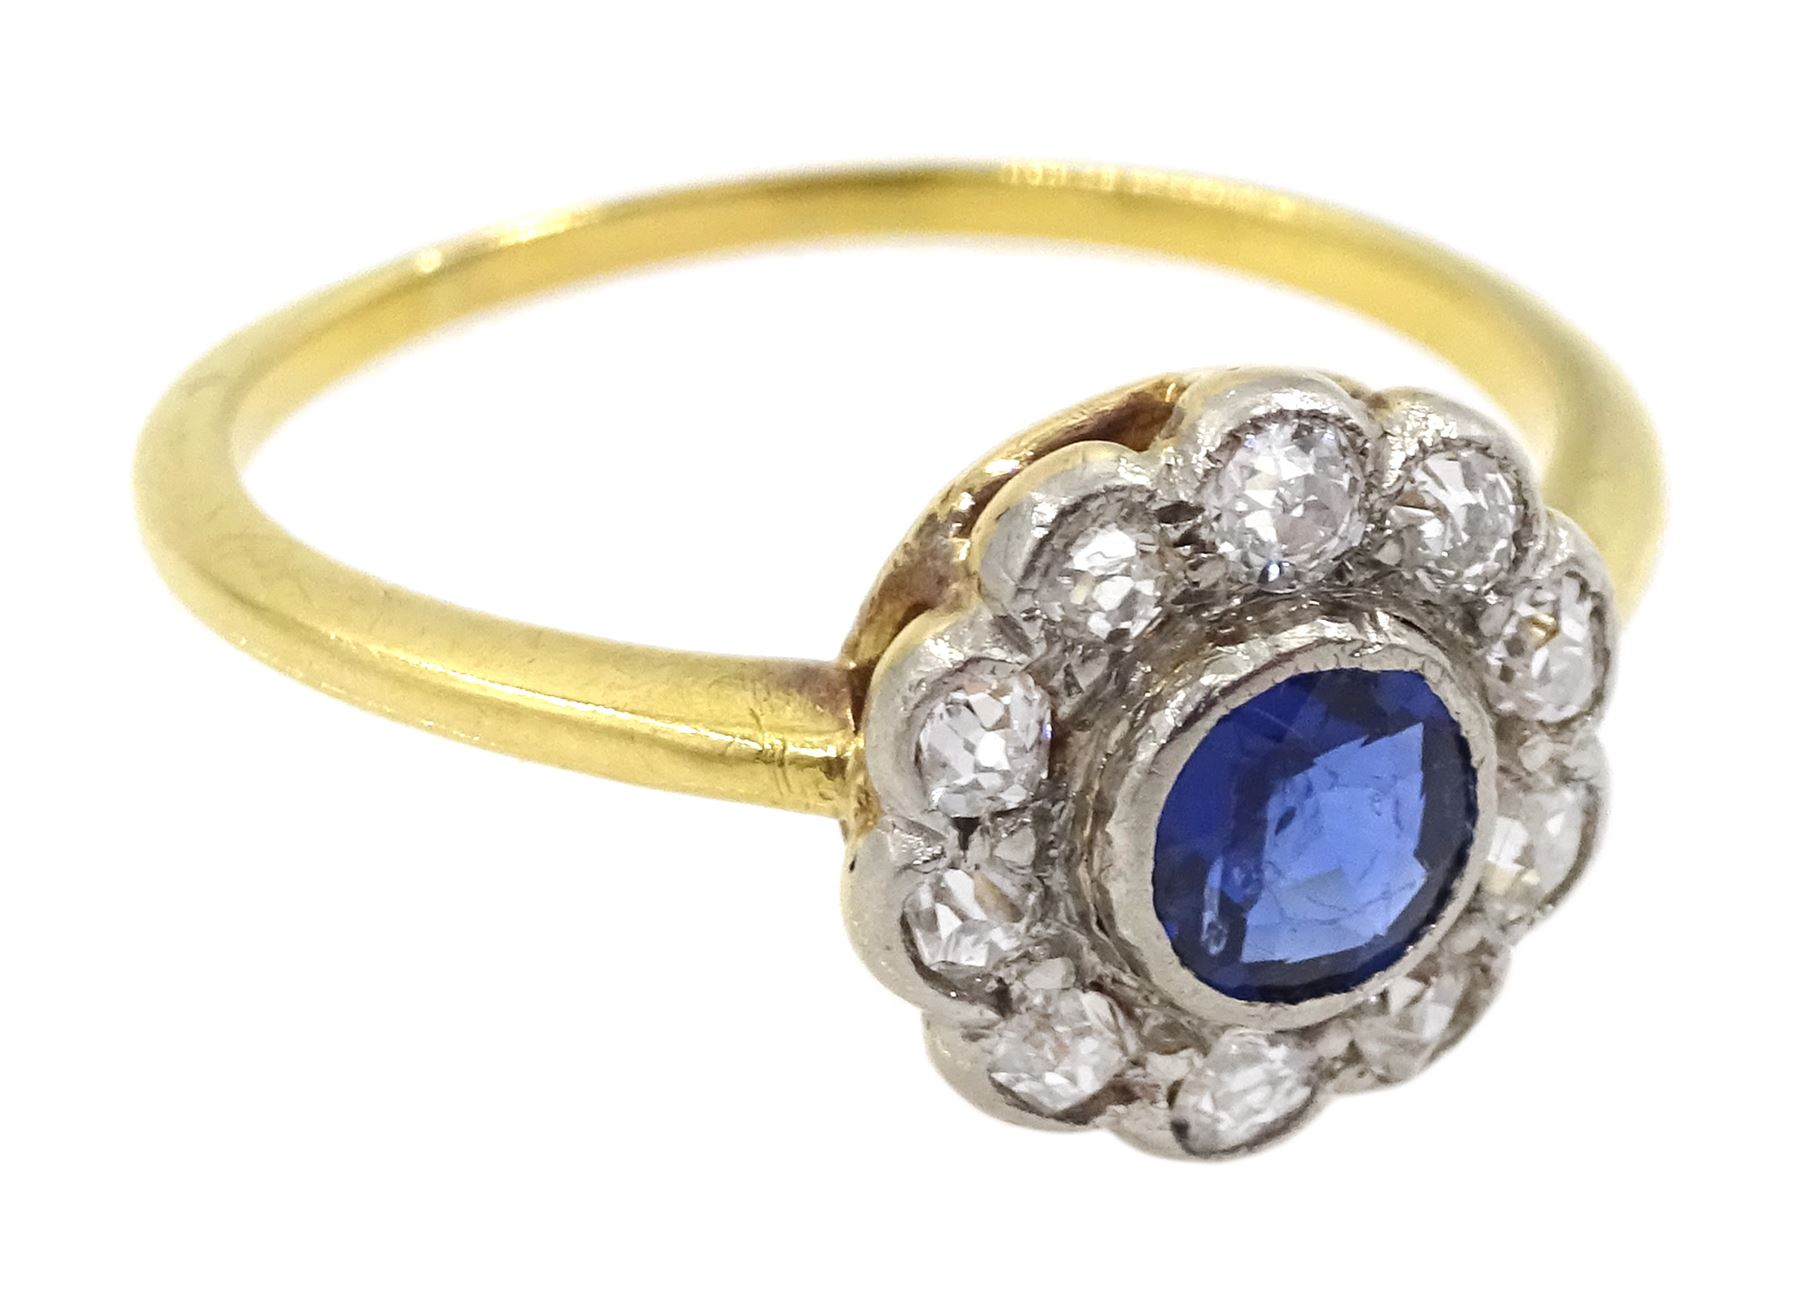 18ct gold round sapphire and old cut diamond cluster ring - Image 3 of 4